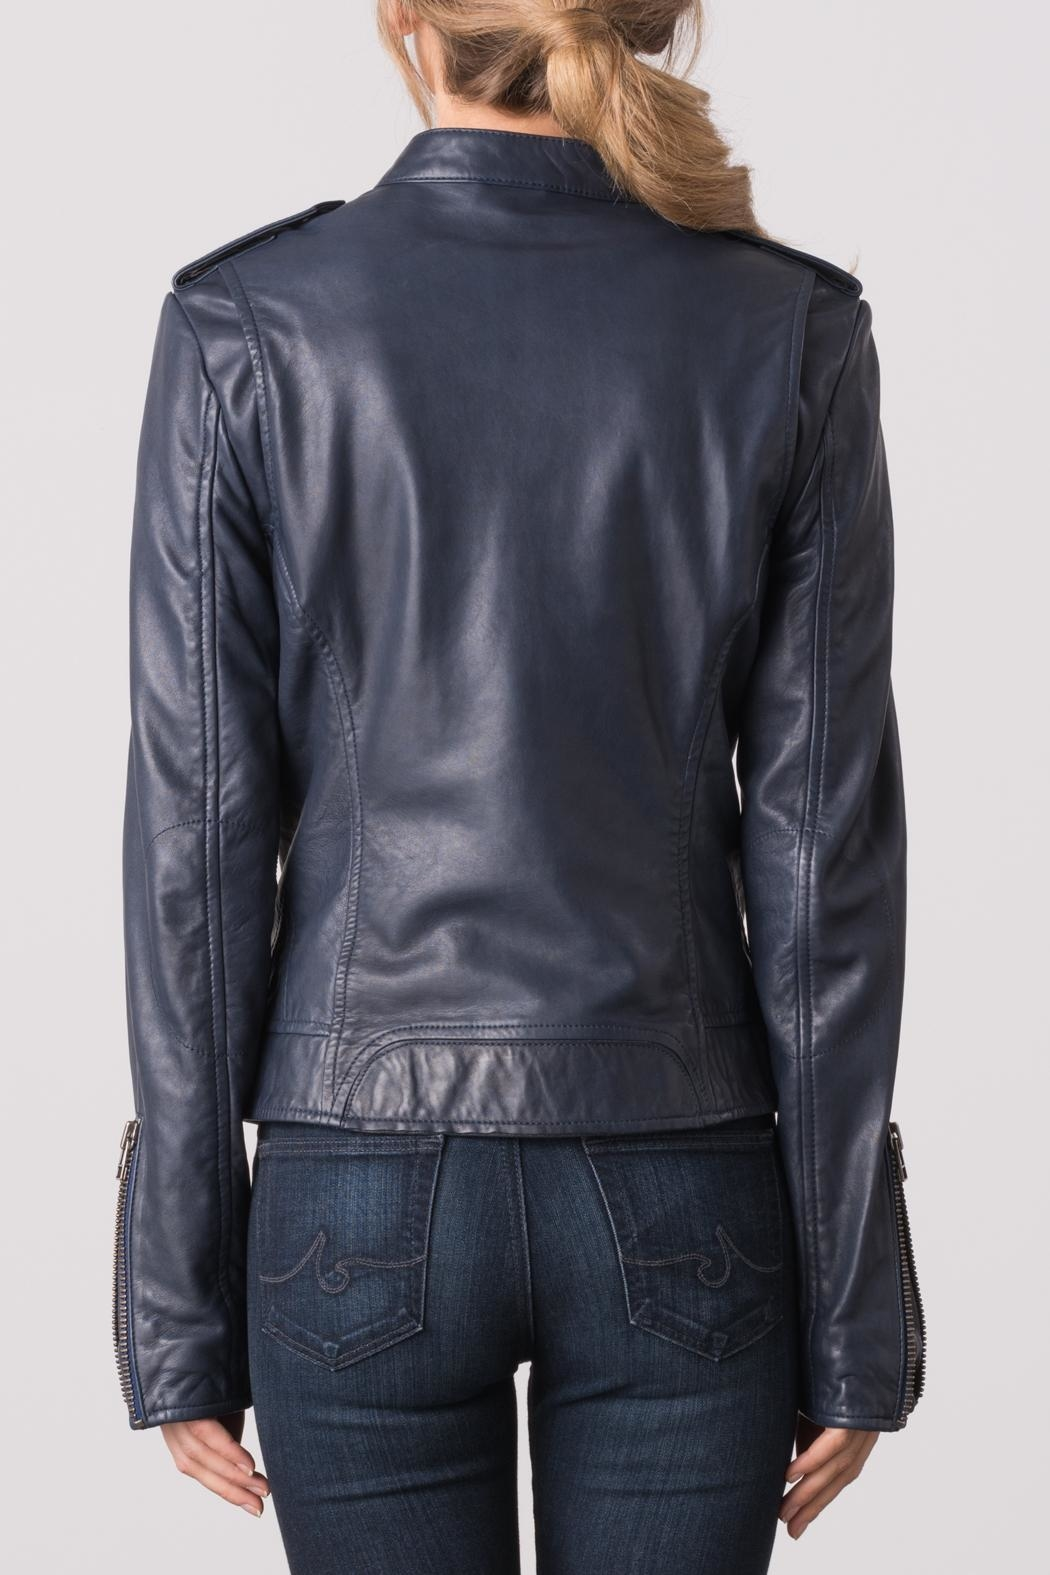 Denis leary leather jacket